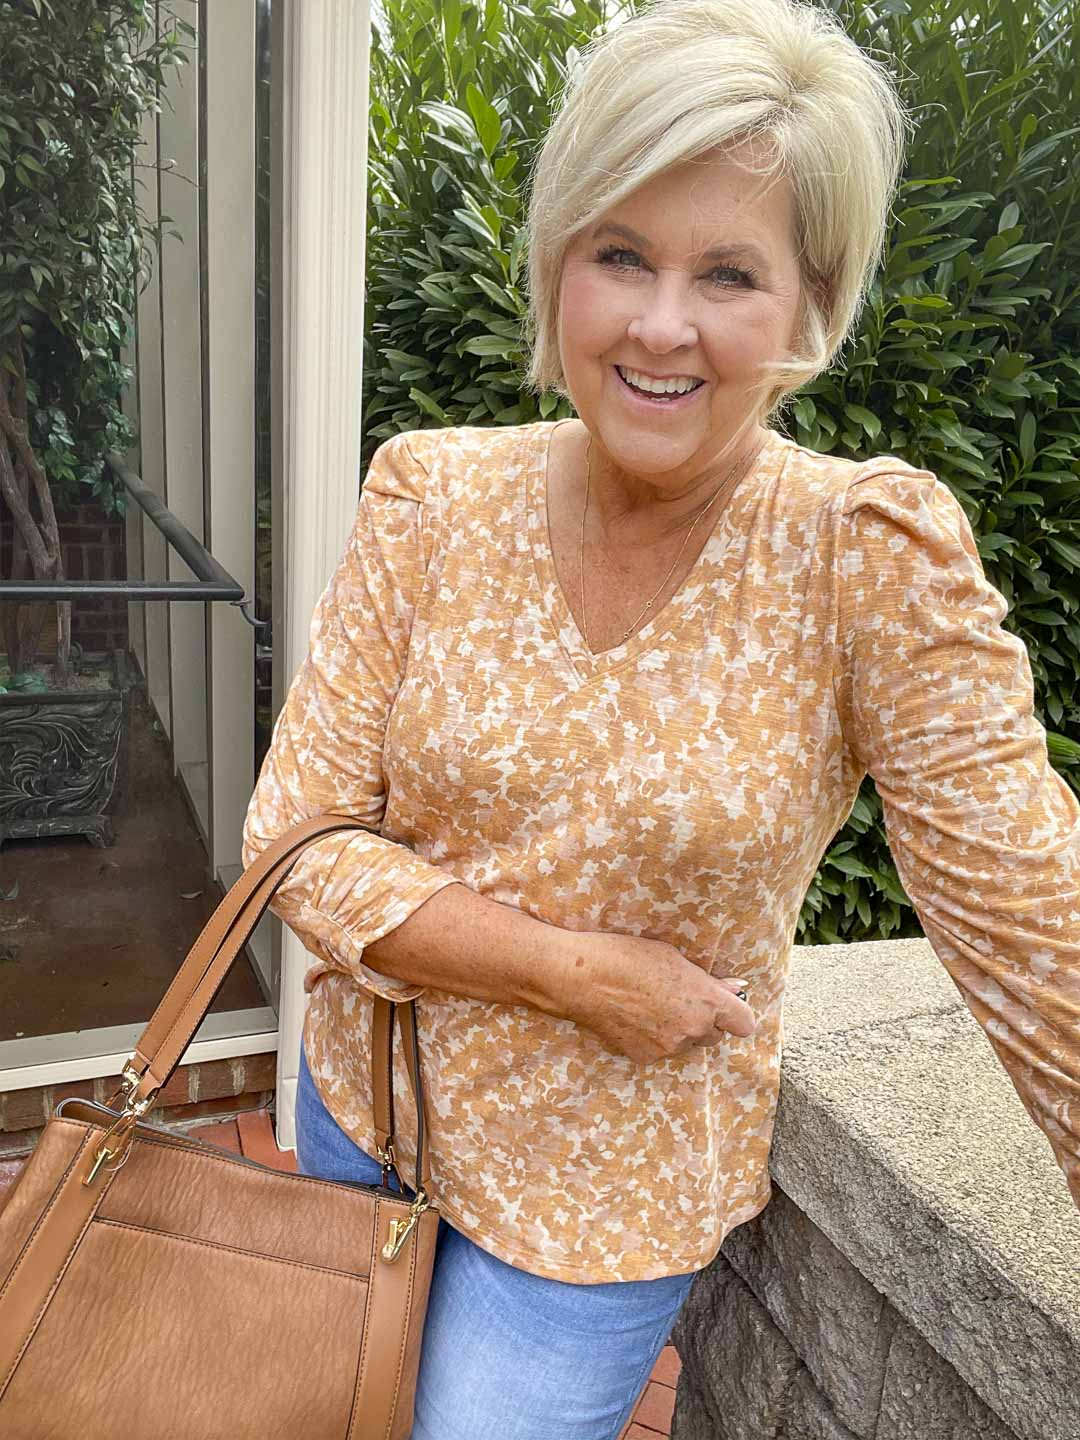 Over 40 Fashion Blogger, Tania Stephens, is wearing one of her puff sleeve tops